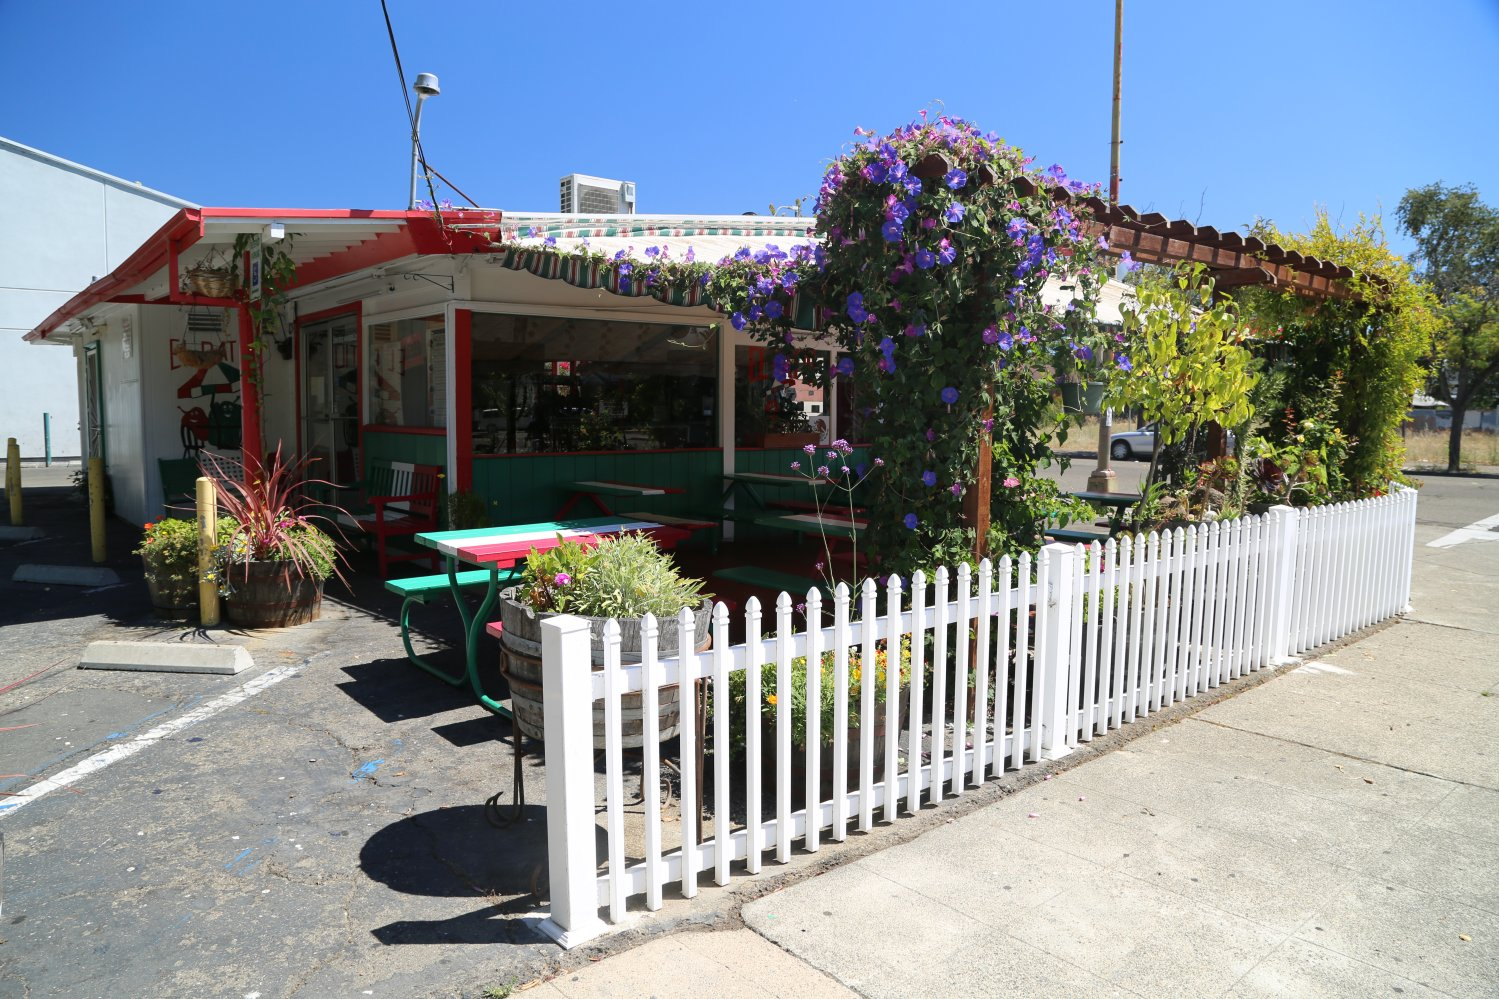 ... El Patio Santa Rosa Ca By Guides Santa Rosa Ca Restaurants Dave S  Travel Corner ...